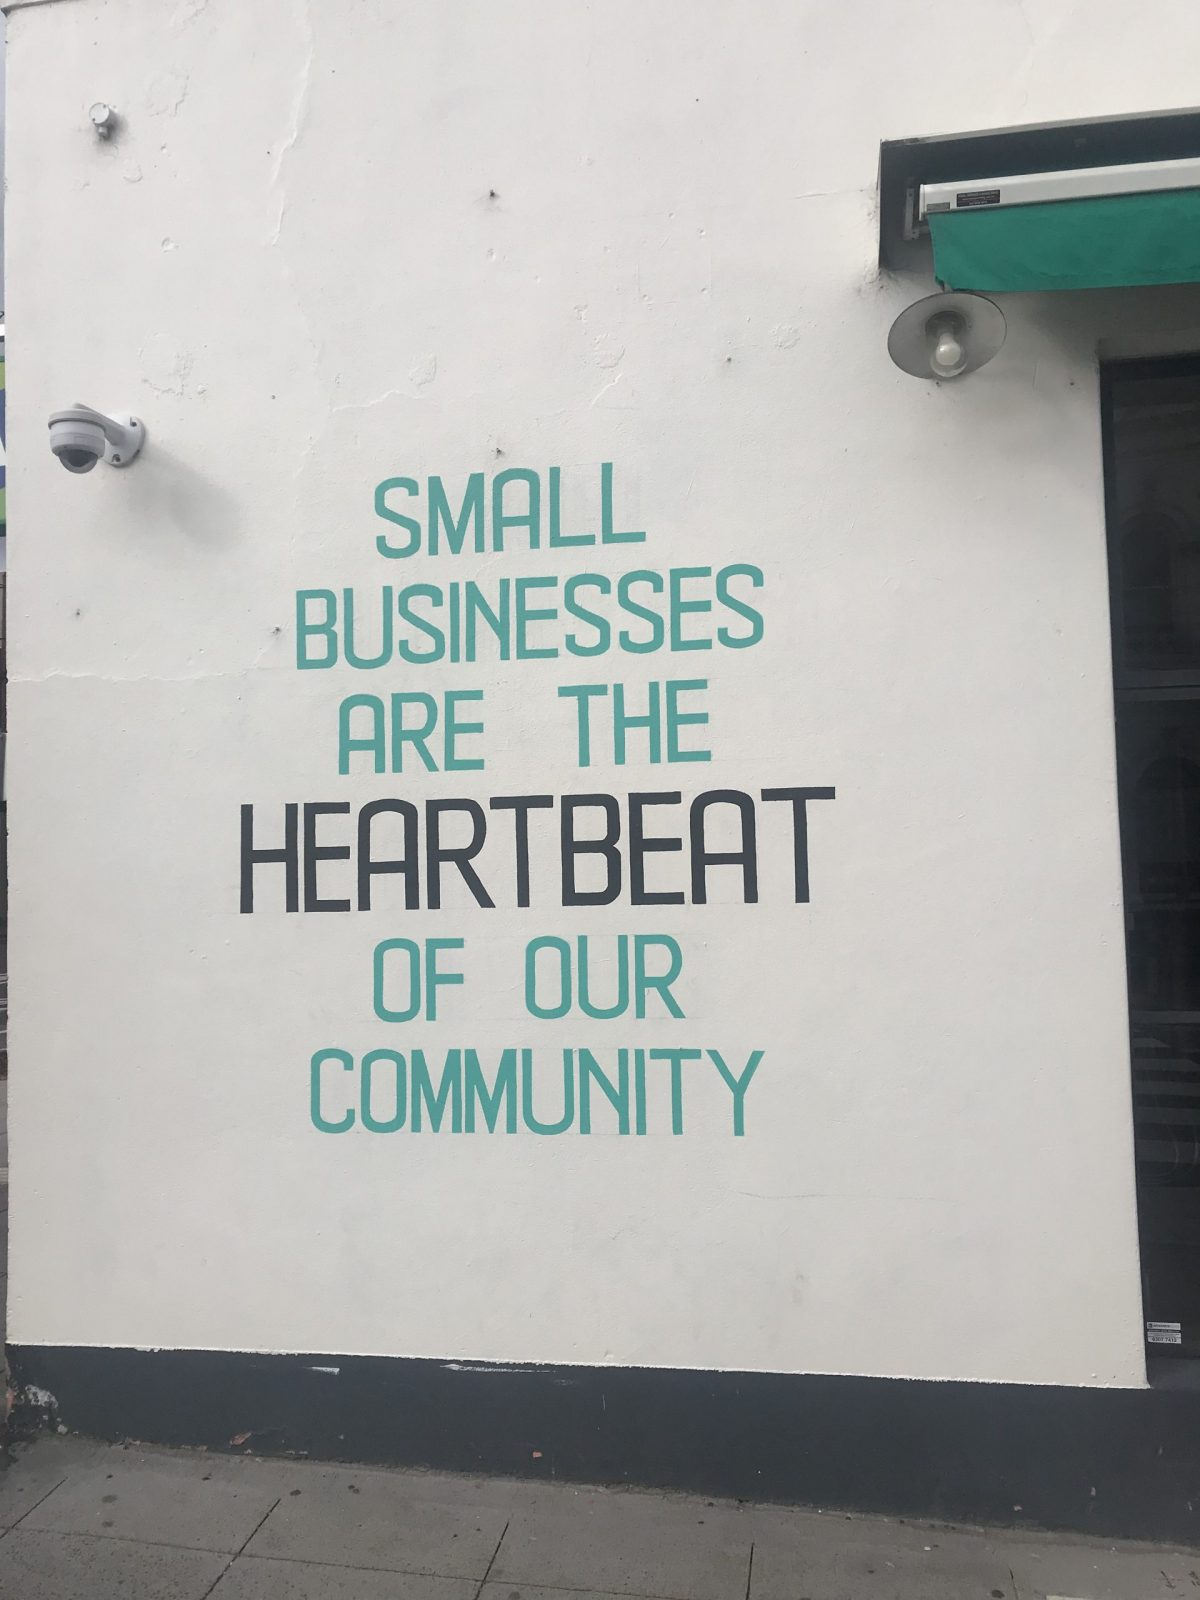 Small Businesses are the heartbeat of a community